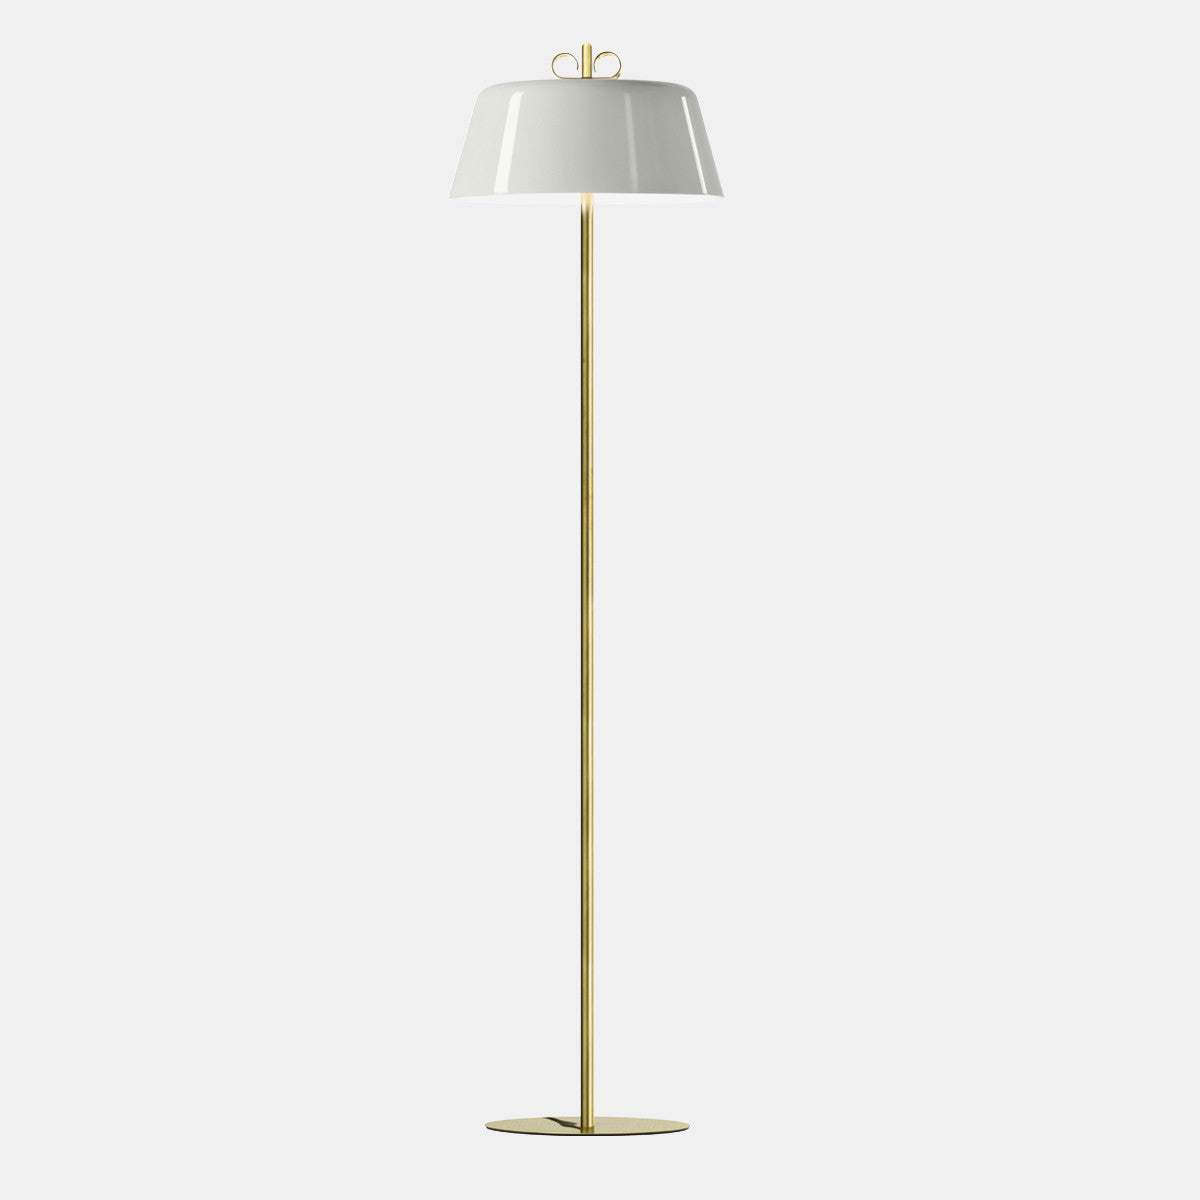 Bon Ton Grey/Natural Brass Floor Lamp